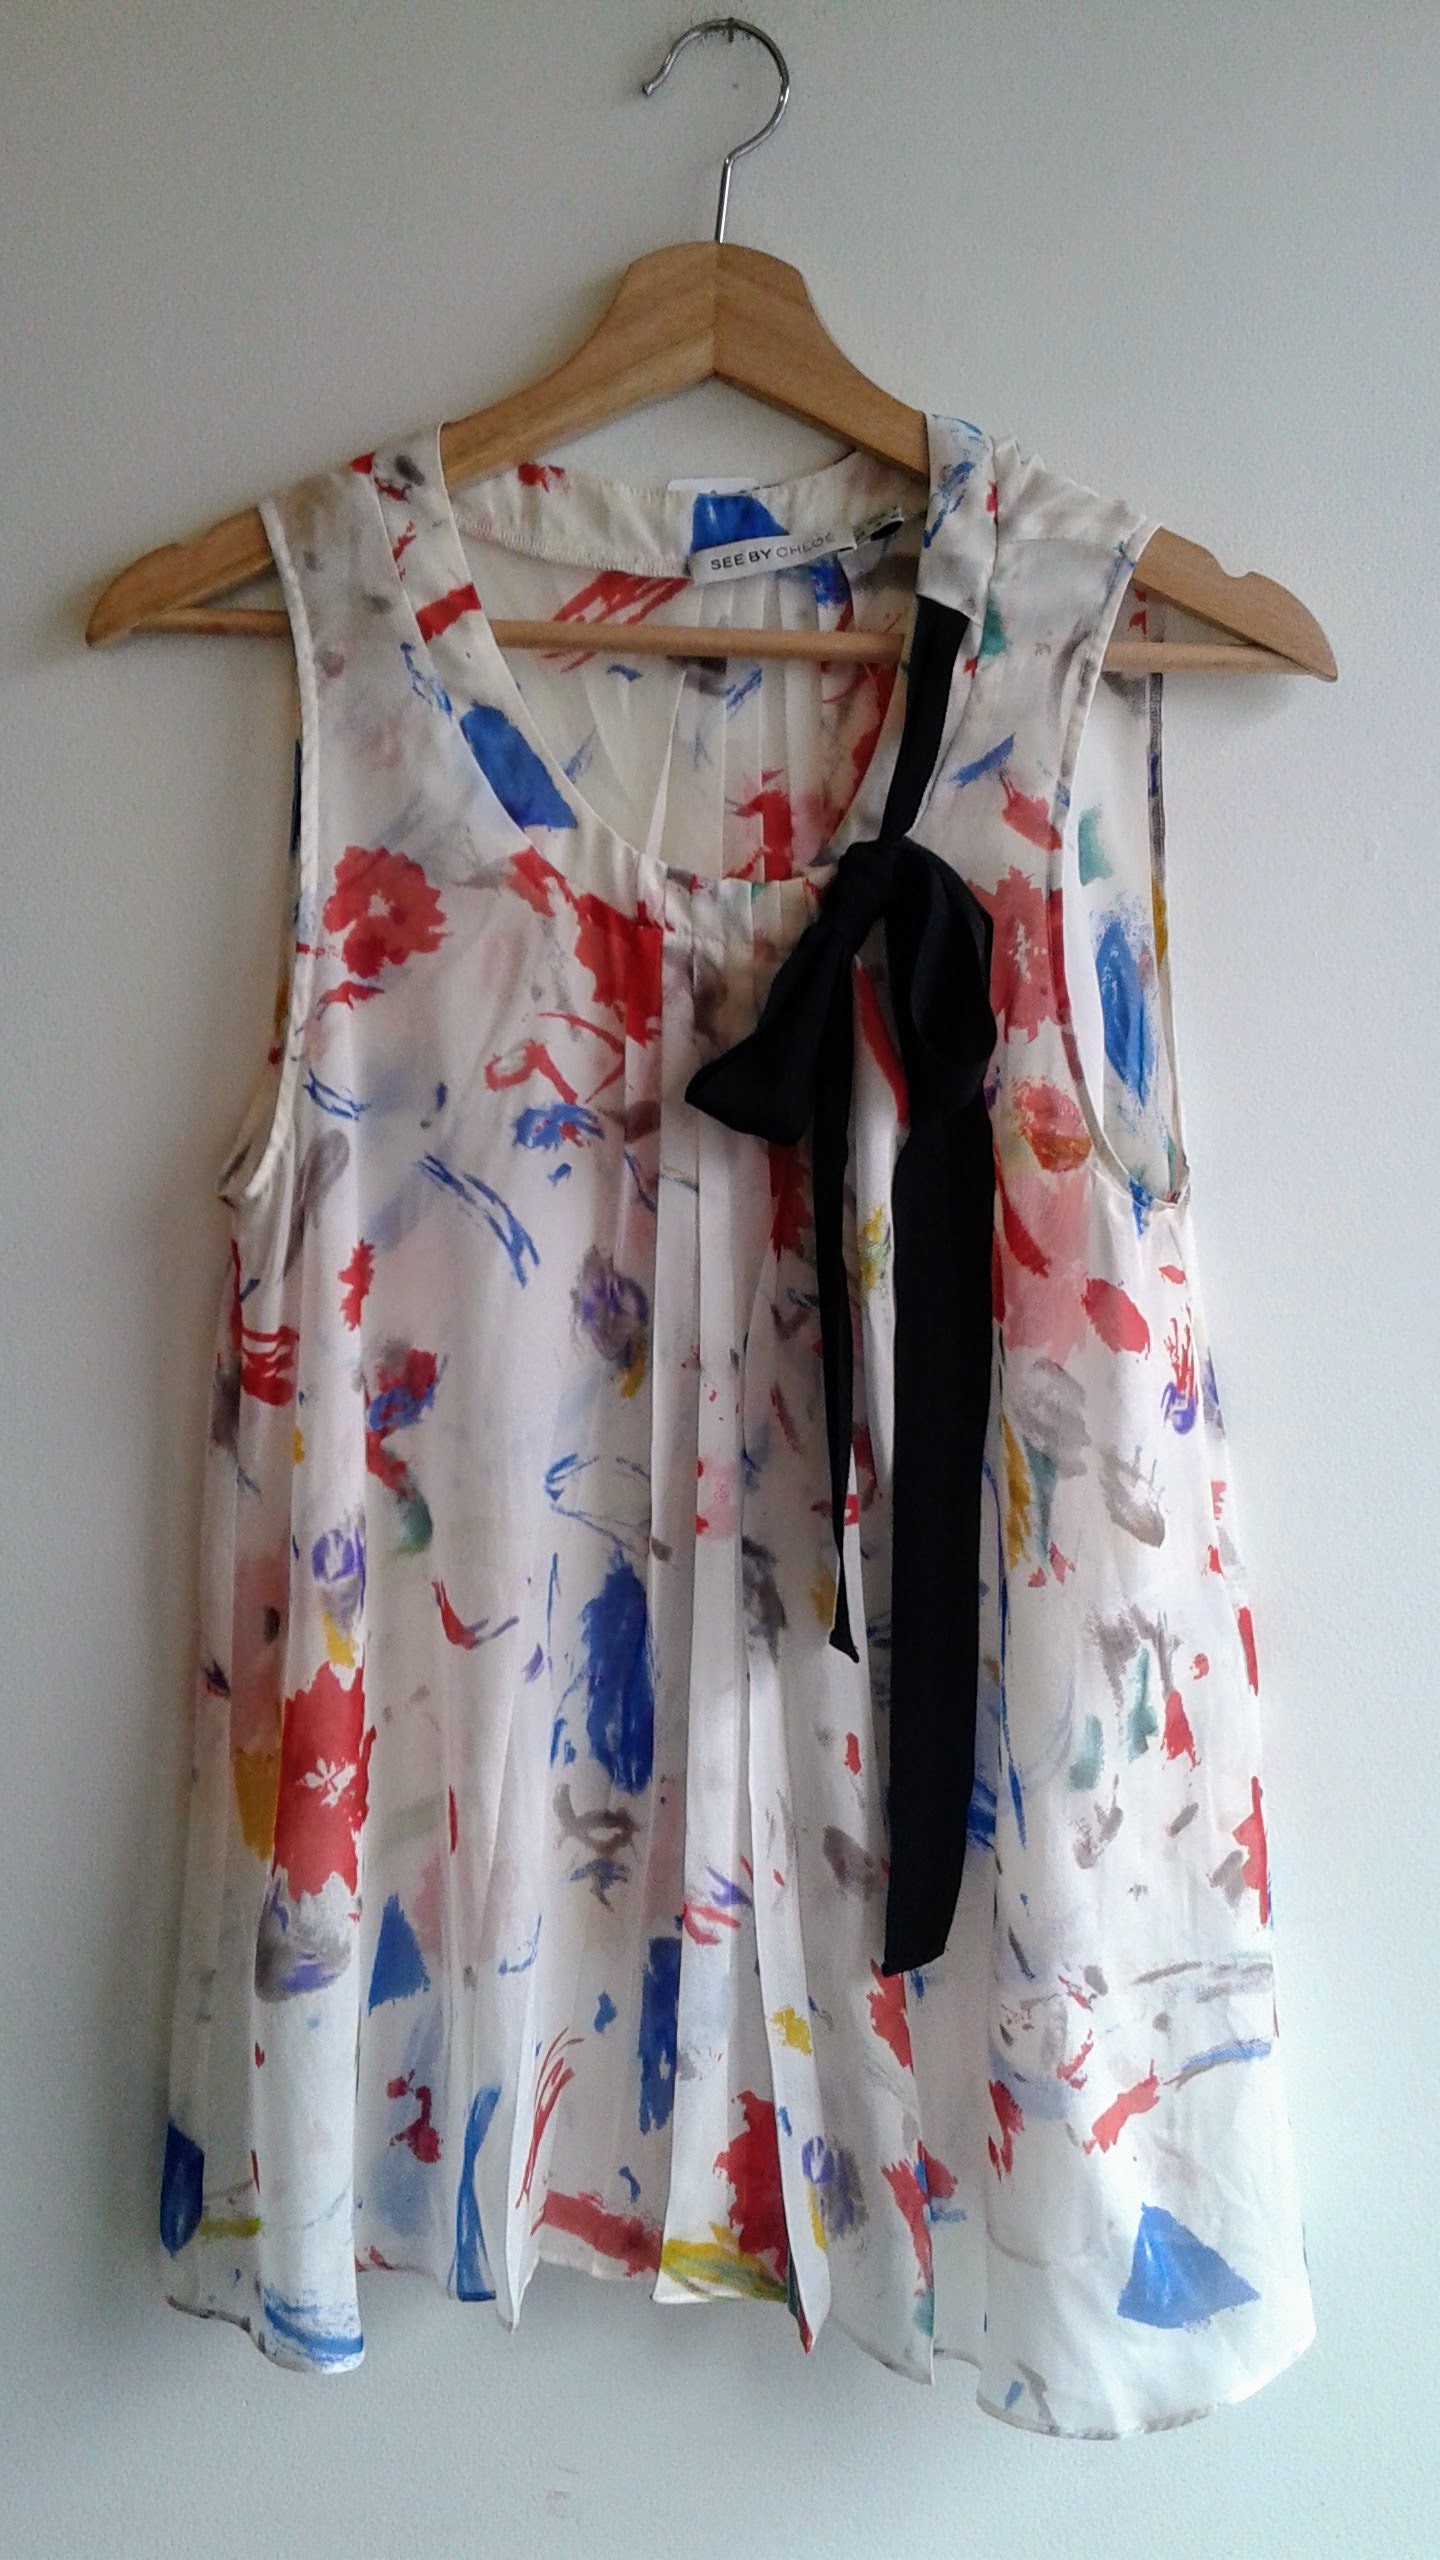 See by Chloe top; Size M, $36